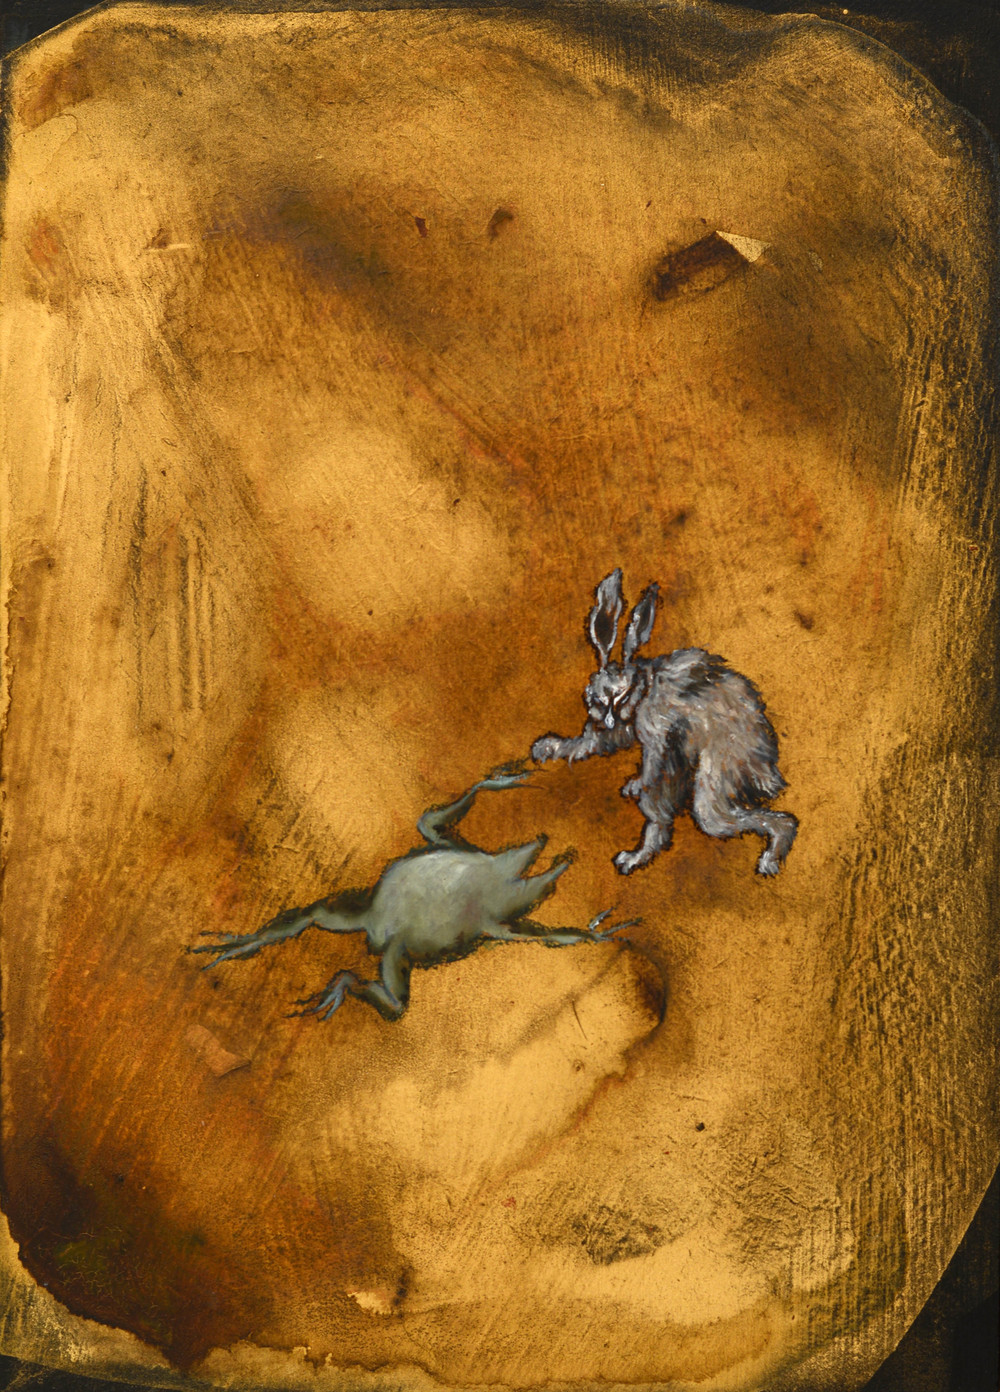 Fainted Frog Rabbit, 2013, oil and acrylic on board, 30 x 21.5 cm